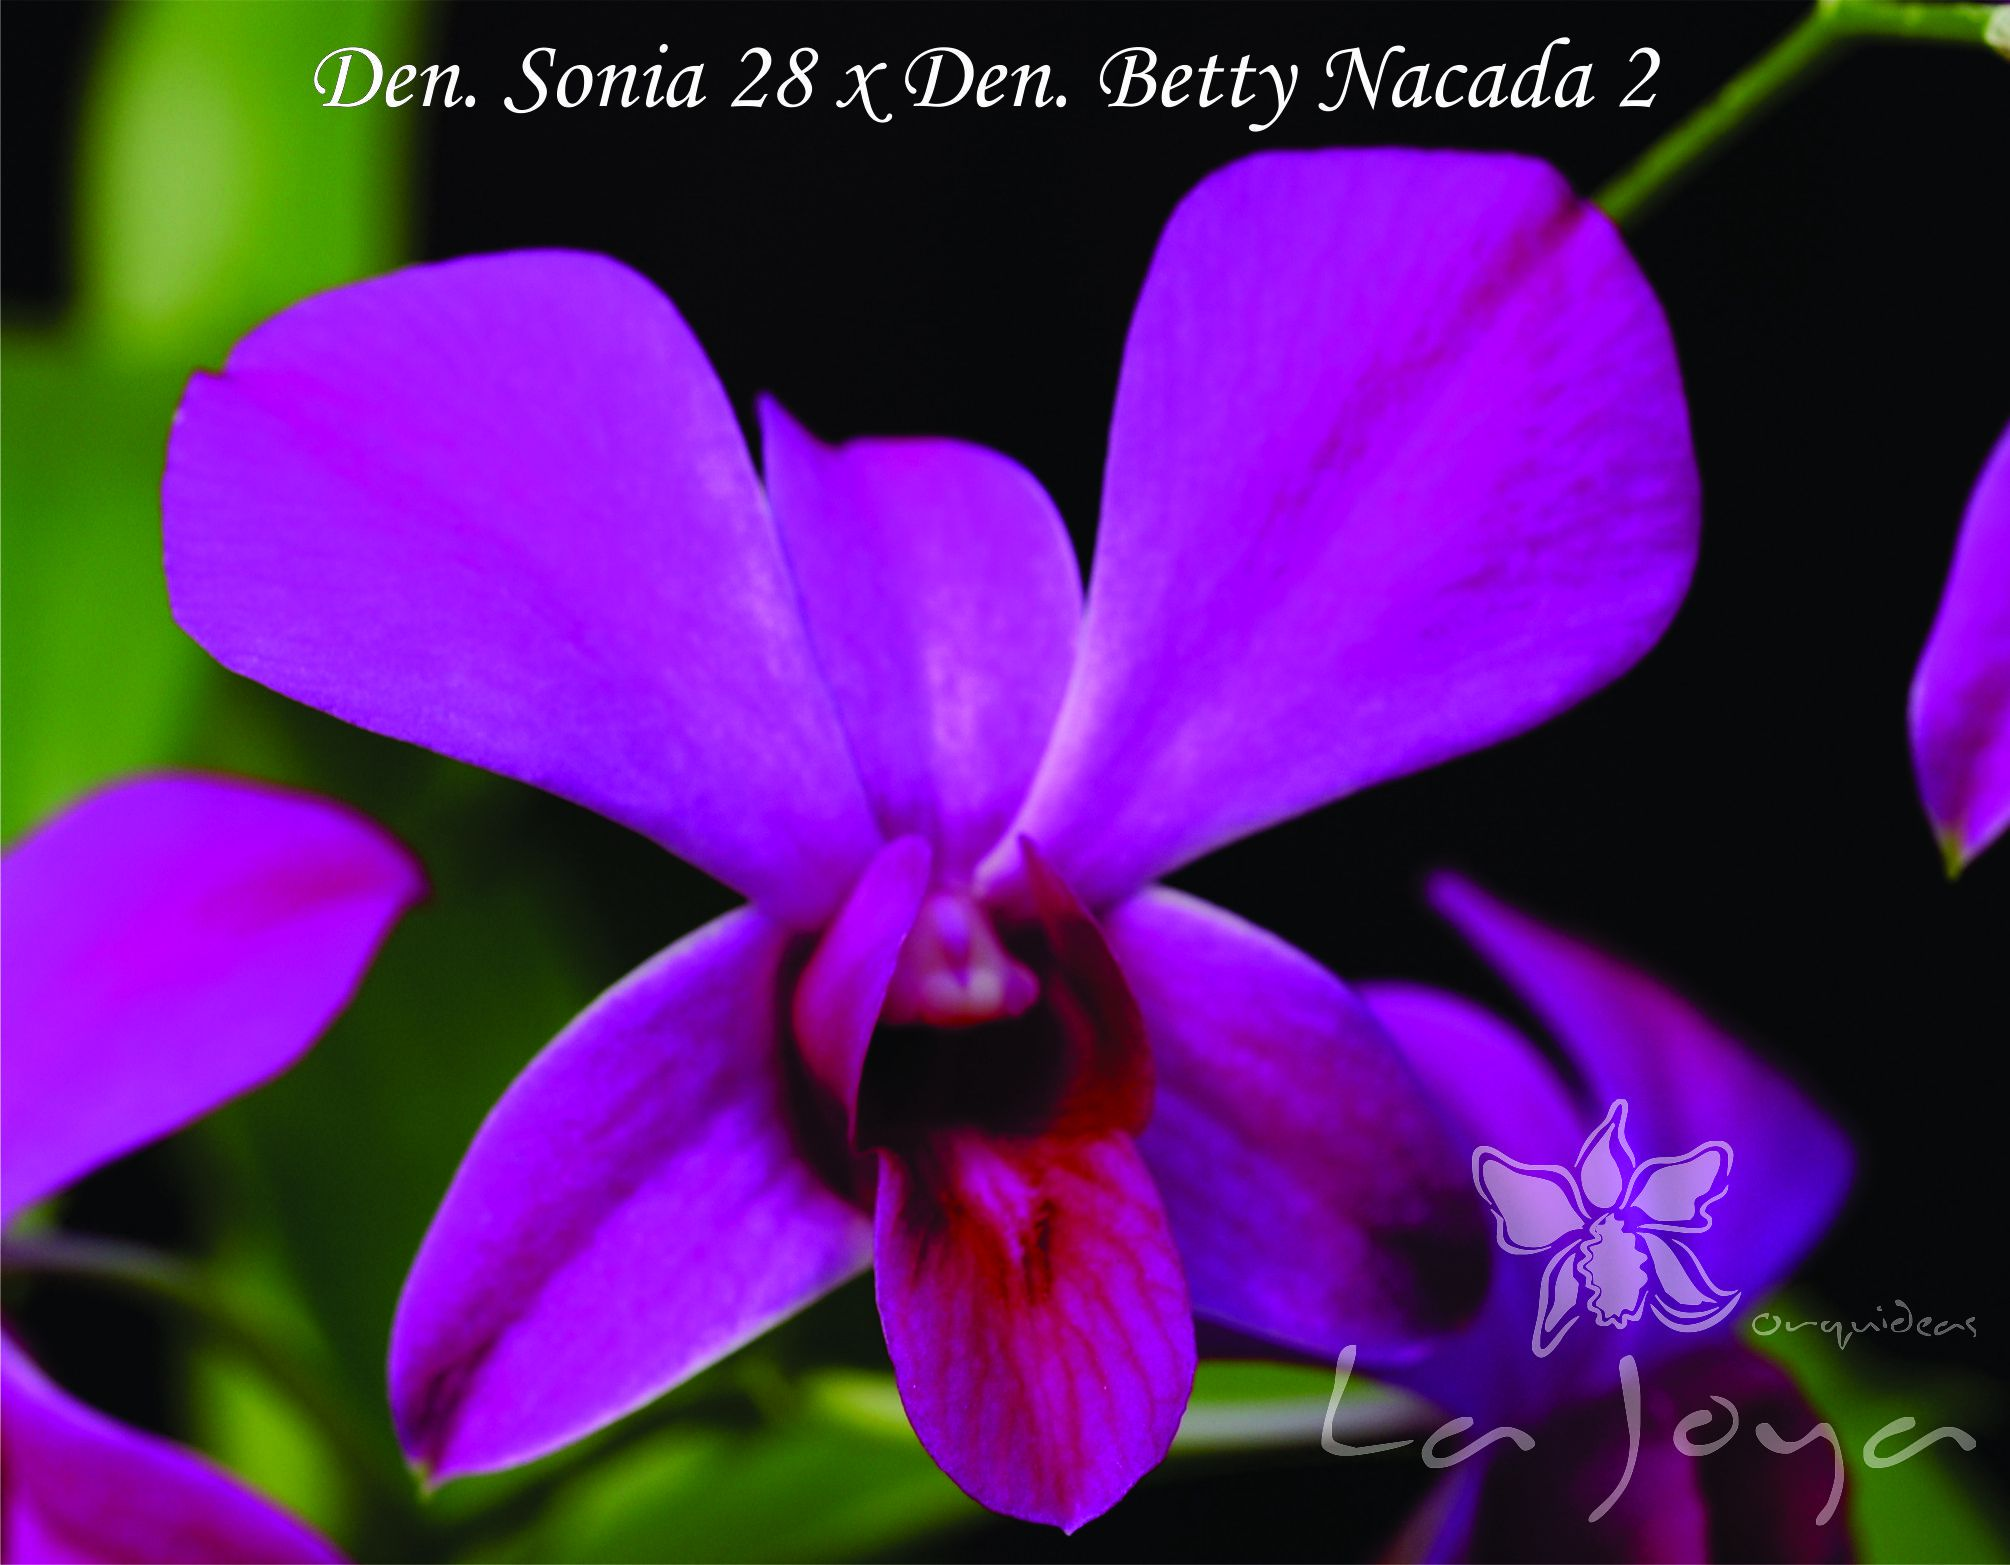 Den Sonia 28 x Den Betty Nacada